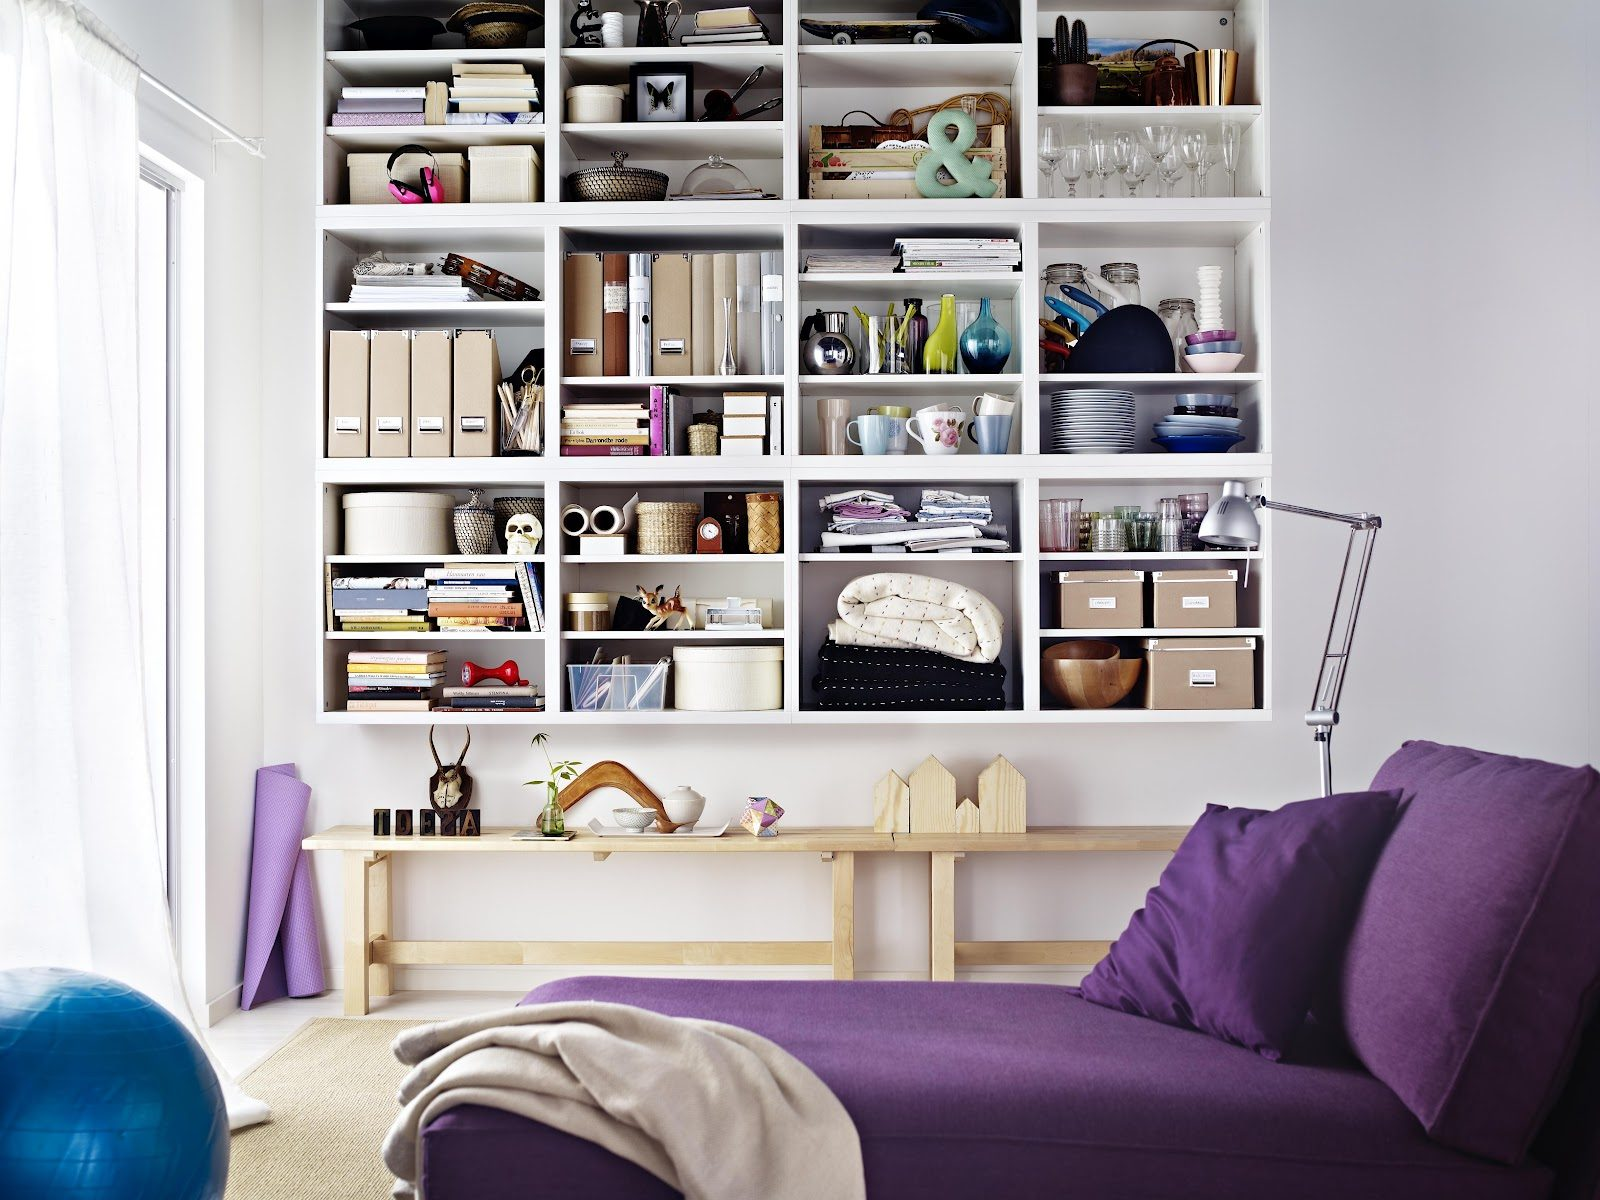 Ikea 2013 catalog preview skimbaco lifestyle online for Ikea furniture catalogue